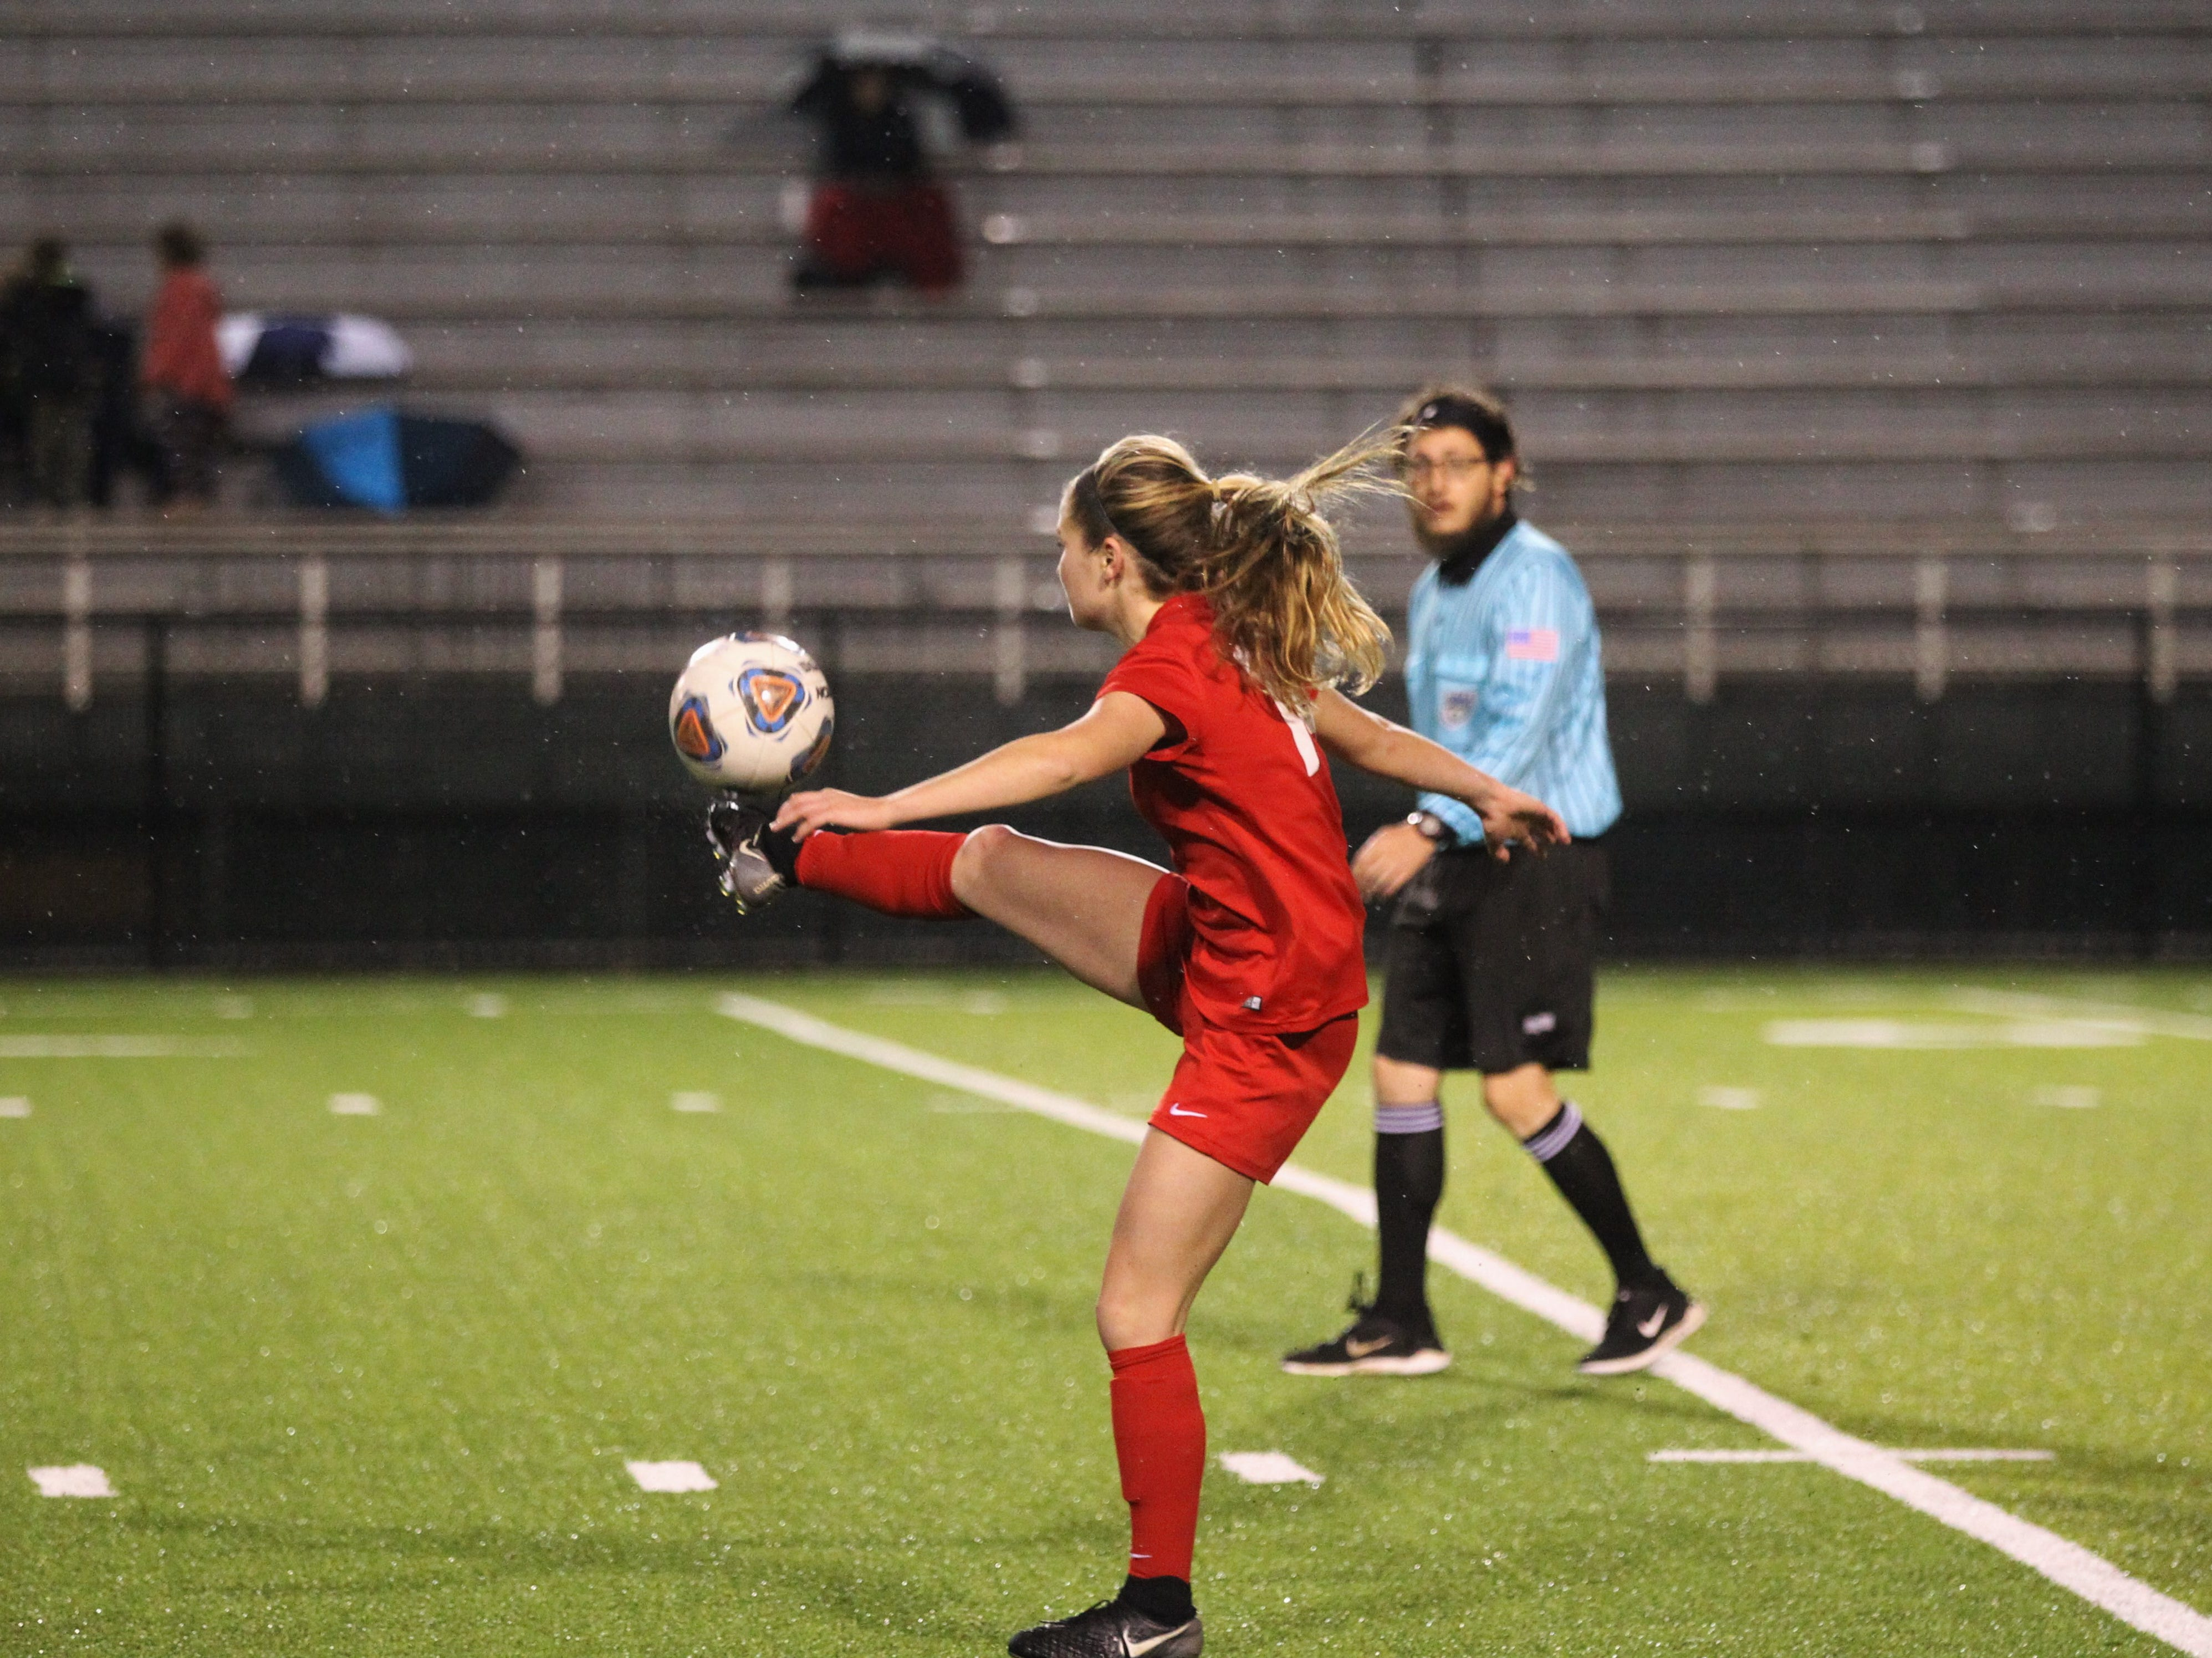 Leon's Emma McGibany plays a ball forward as Leon's girls soccer team beat Lincoln in the District 2-4A championship on Feb. 1, 2019.